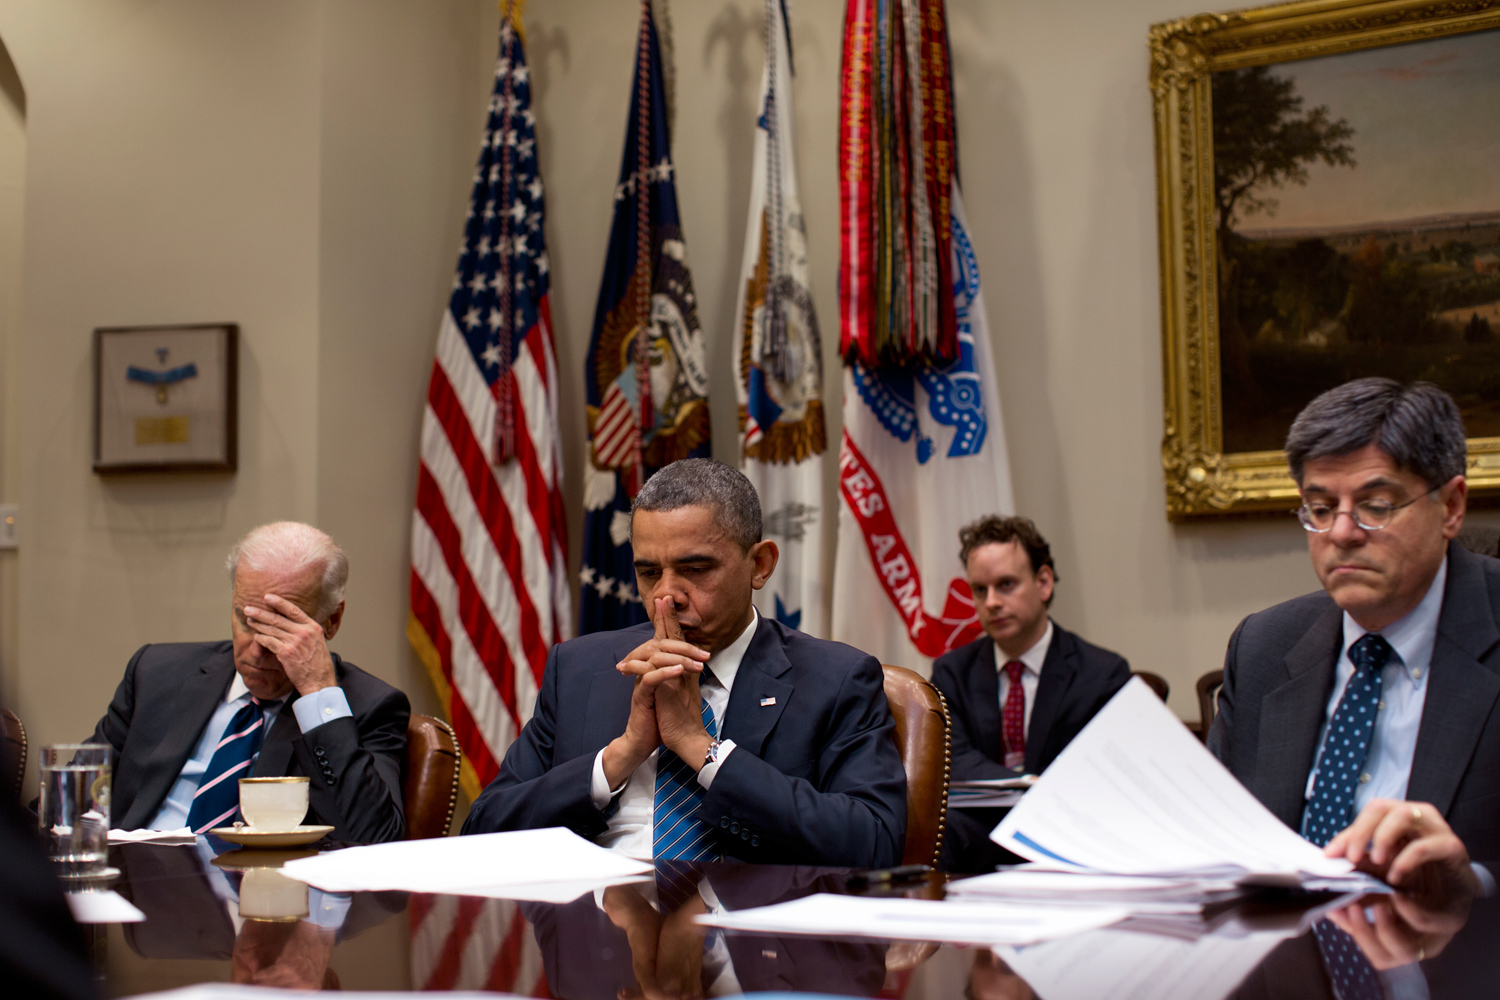 President Obama, Vice President Biden and Chief of Staff Jack Lew listen during a policy meeting in the Roosevelt Room of the White House.